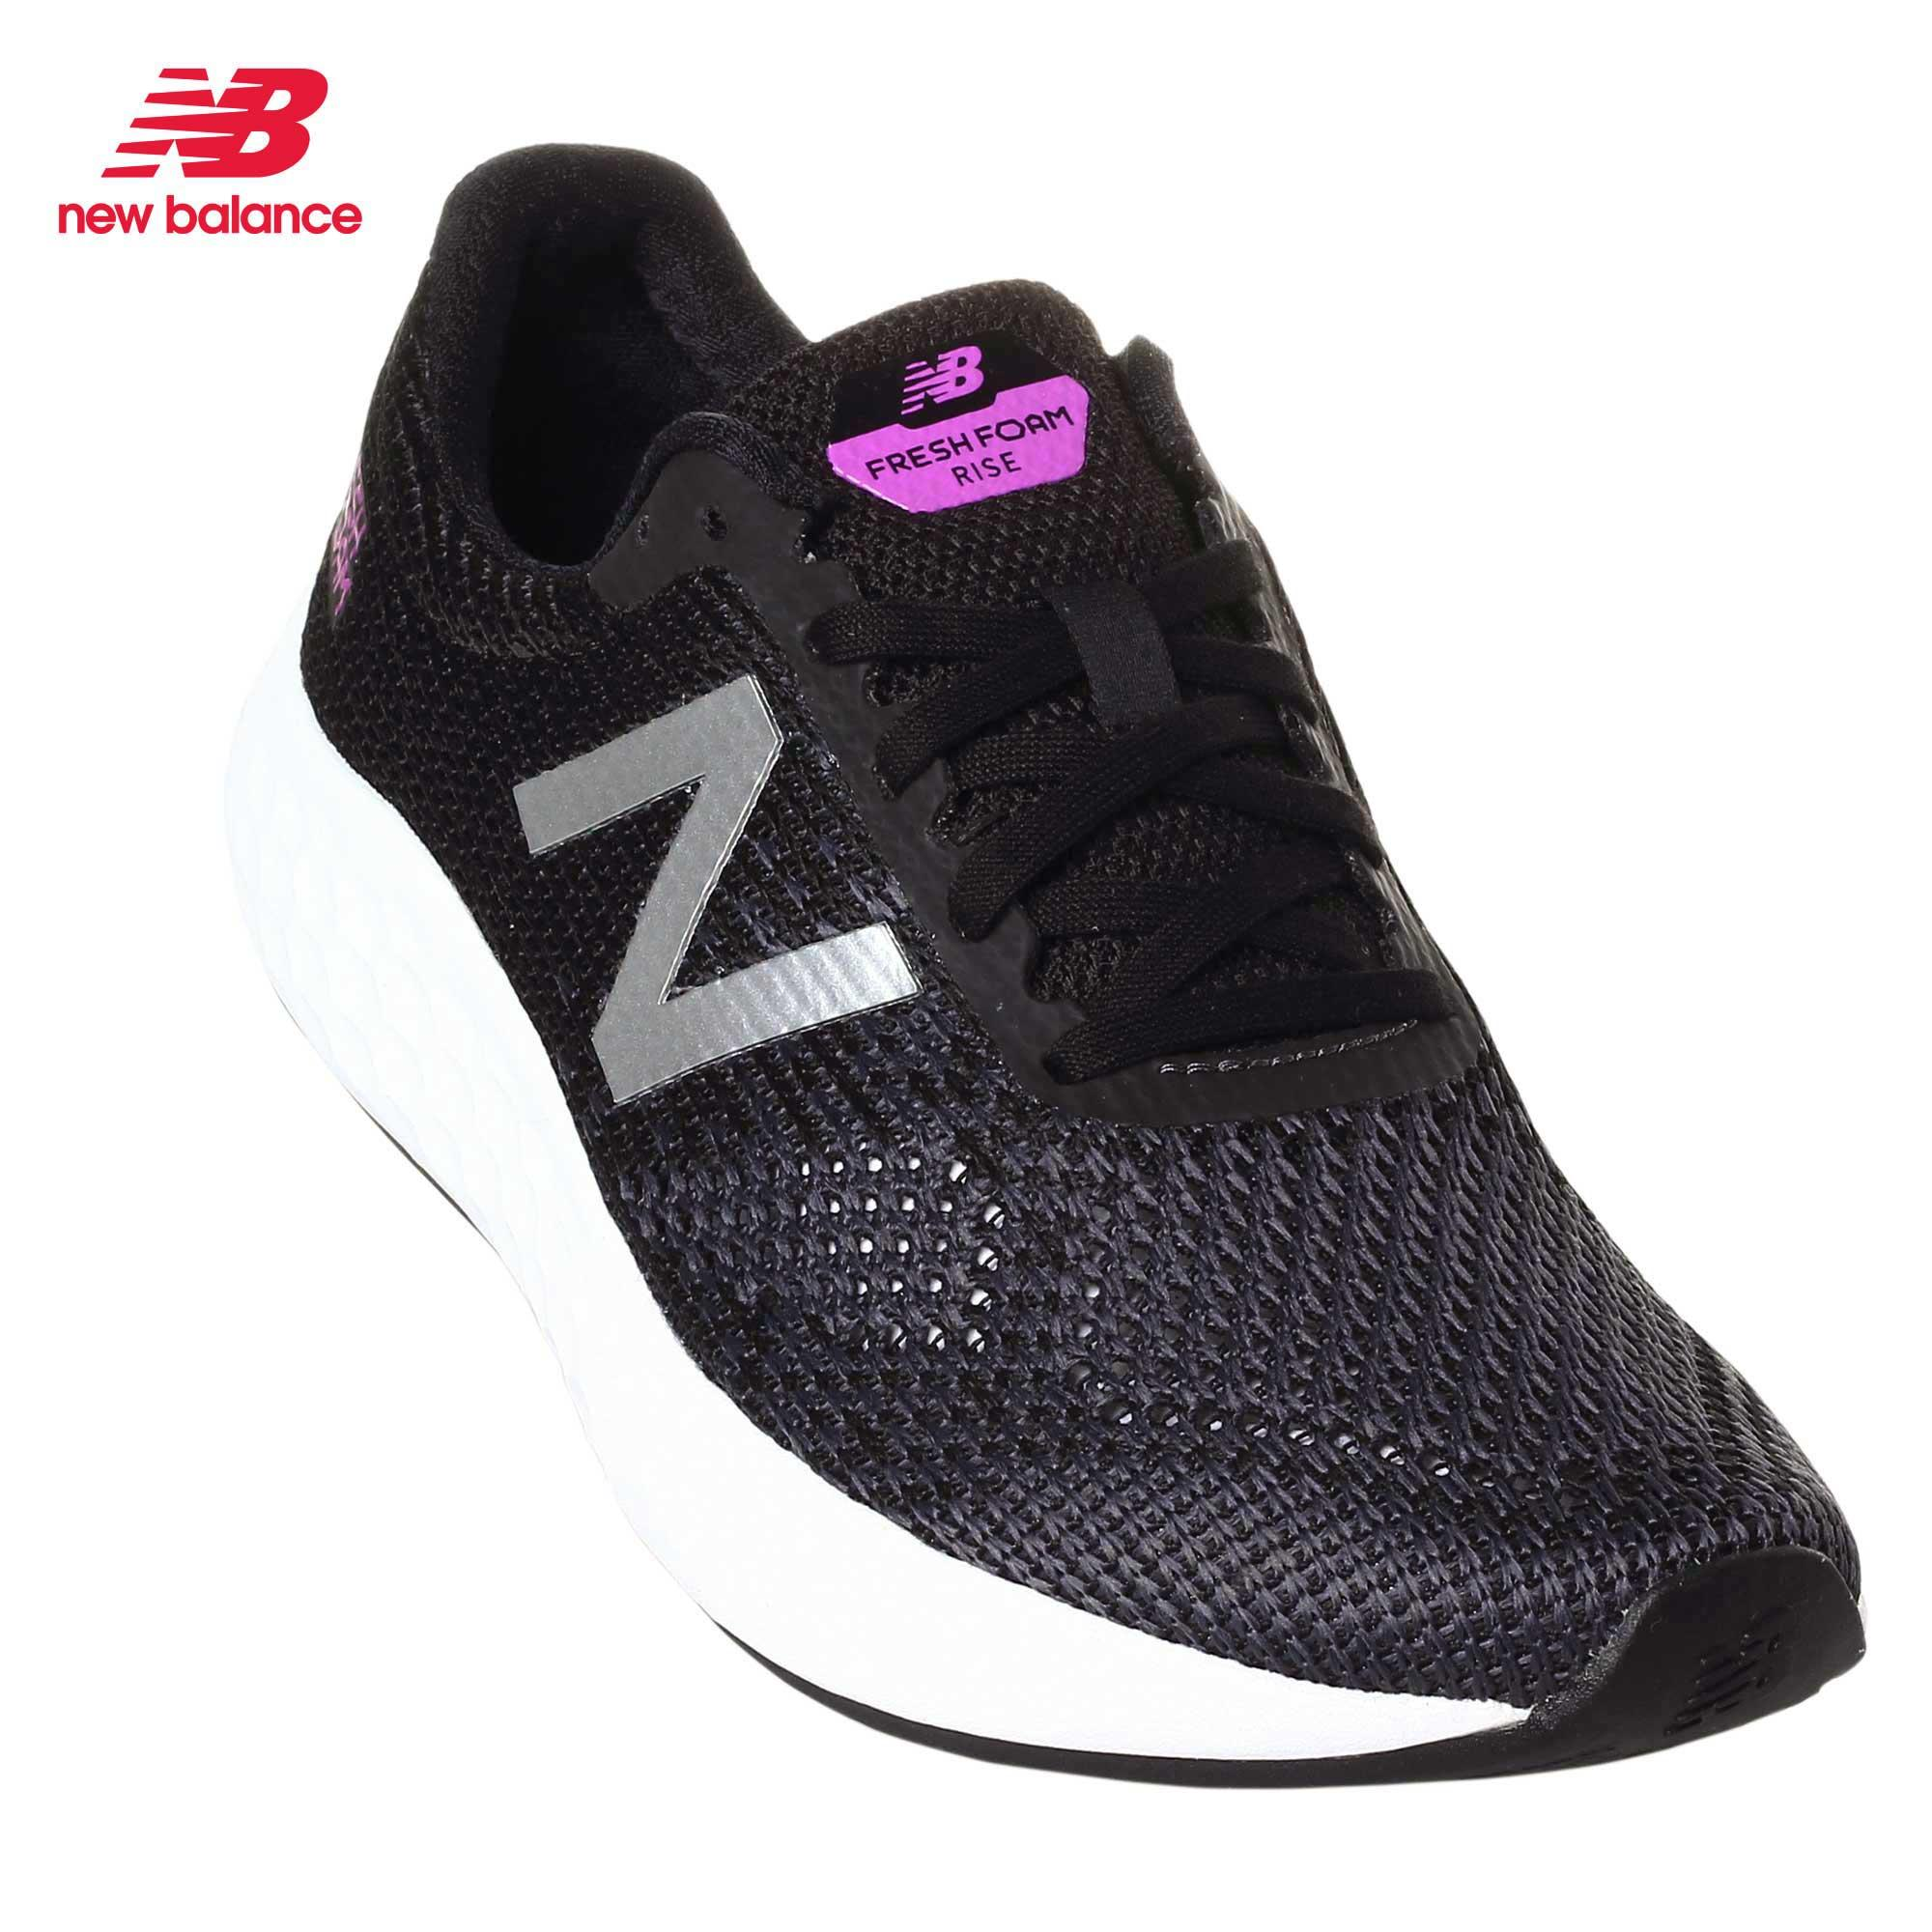 a7d8c8c3bed7a New Balance FF Rise FR Running Shoes for Women